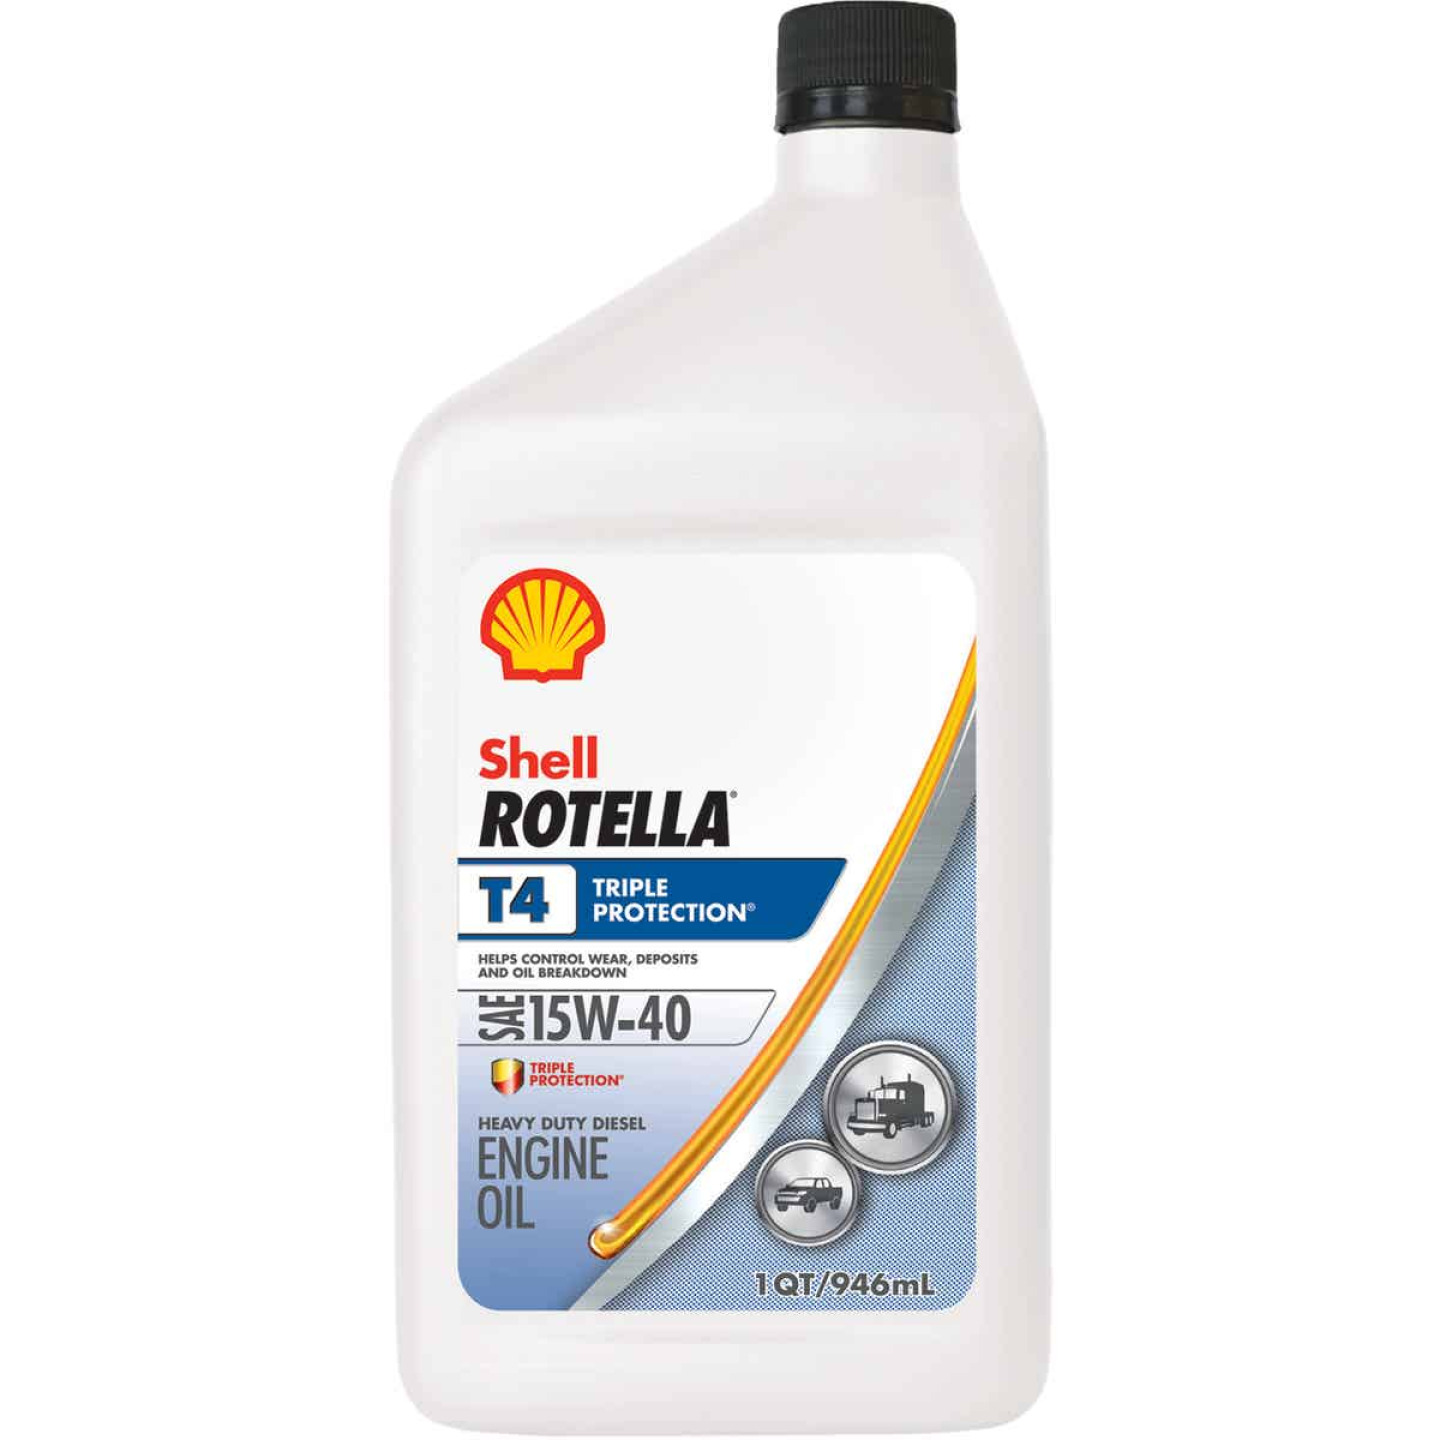 ROTELLA 15W40 Quart Triple Protection Motor Oil Image 1